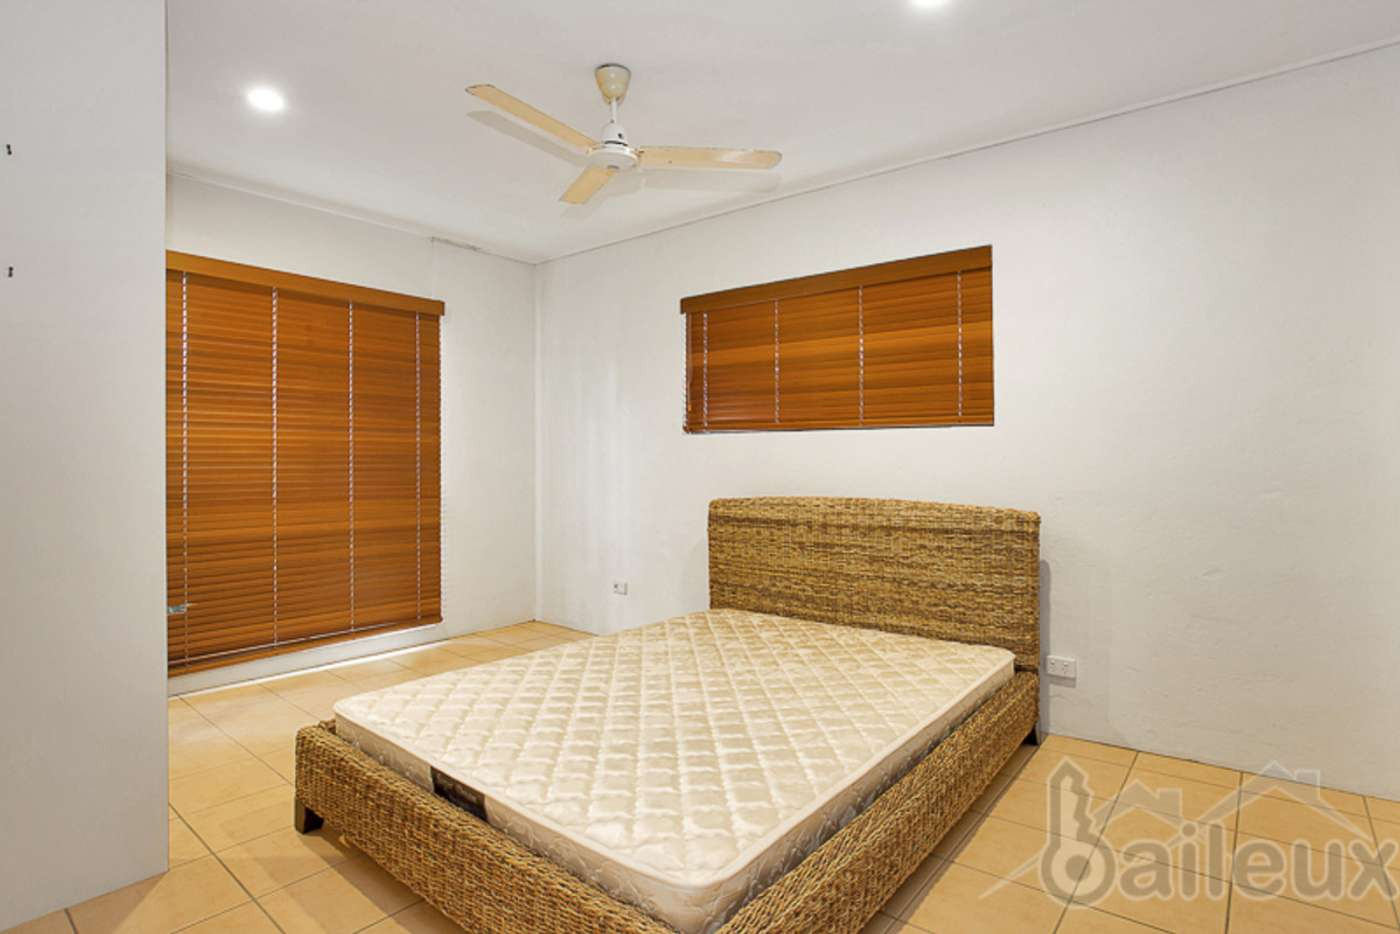 Seventh view of Homely house listing, 174 Waverley Street, Bucasia QLD 4750